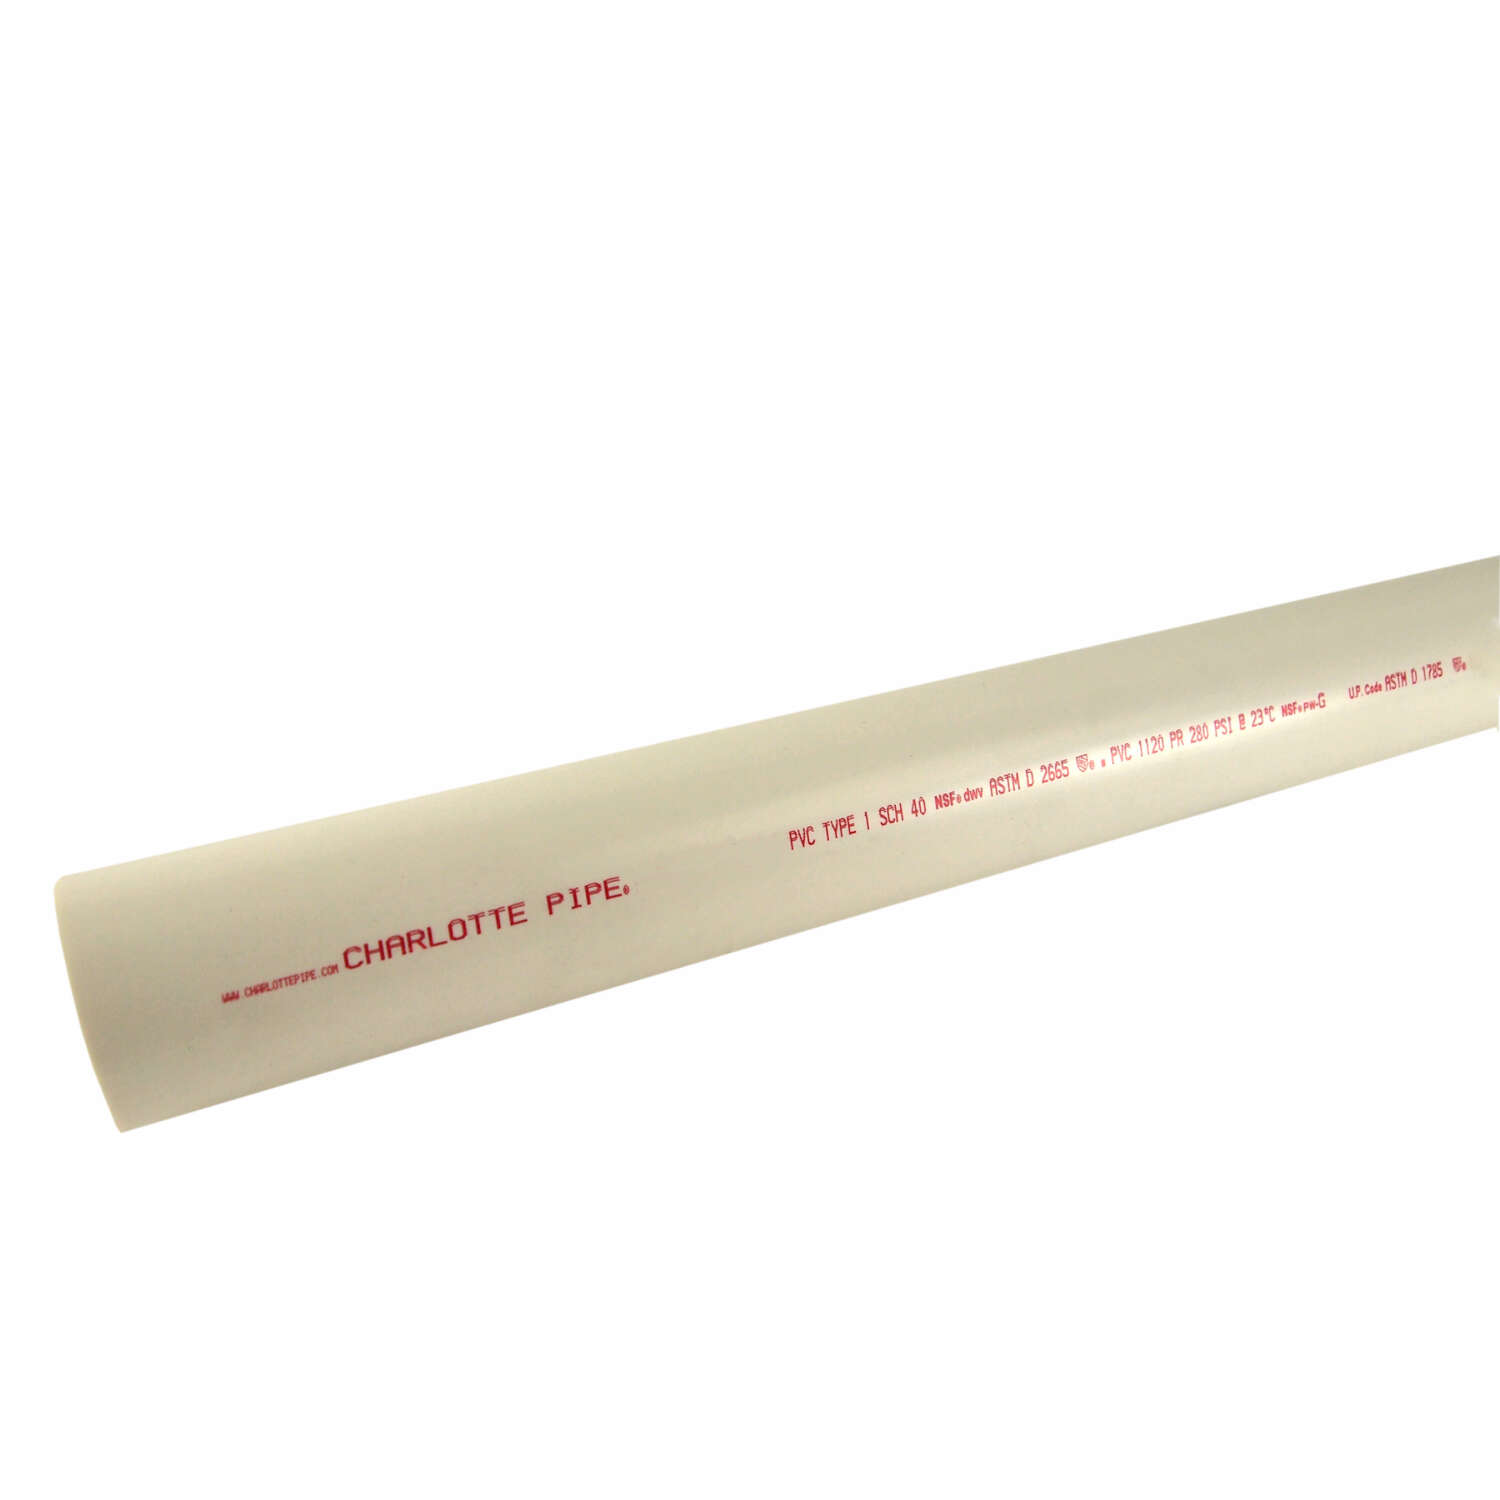 Charlotte Pipe  Schedule 40  PVC  Dual Rated Pipe  6 in. Dia. x 10 ft. L Plain End  180 psi